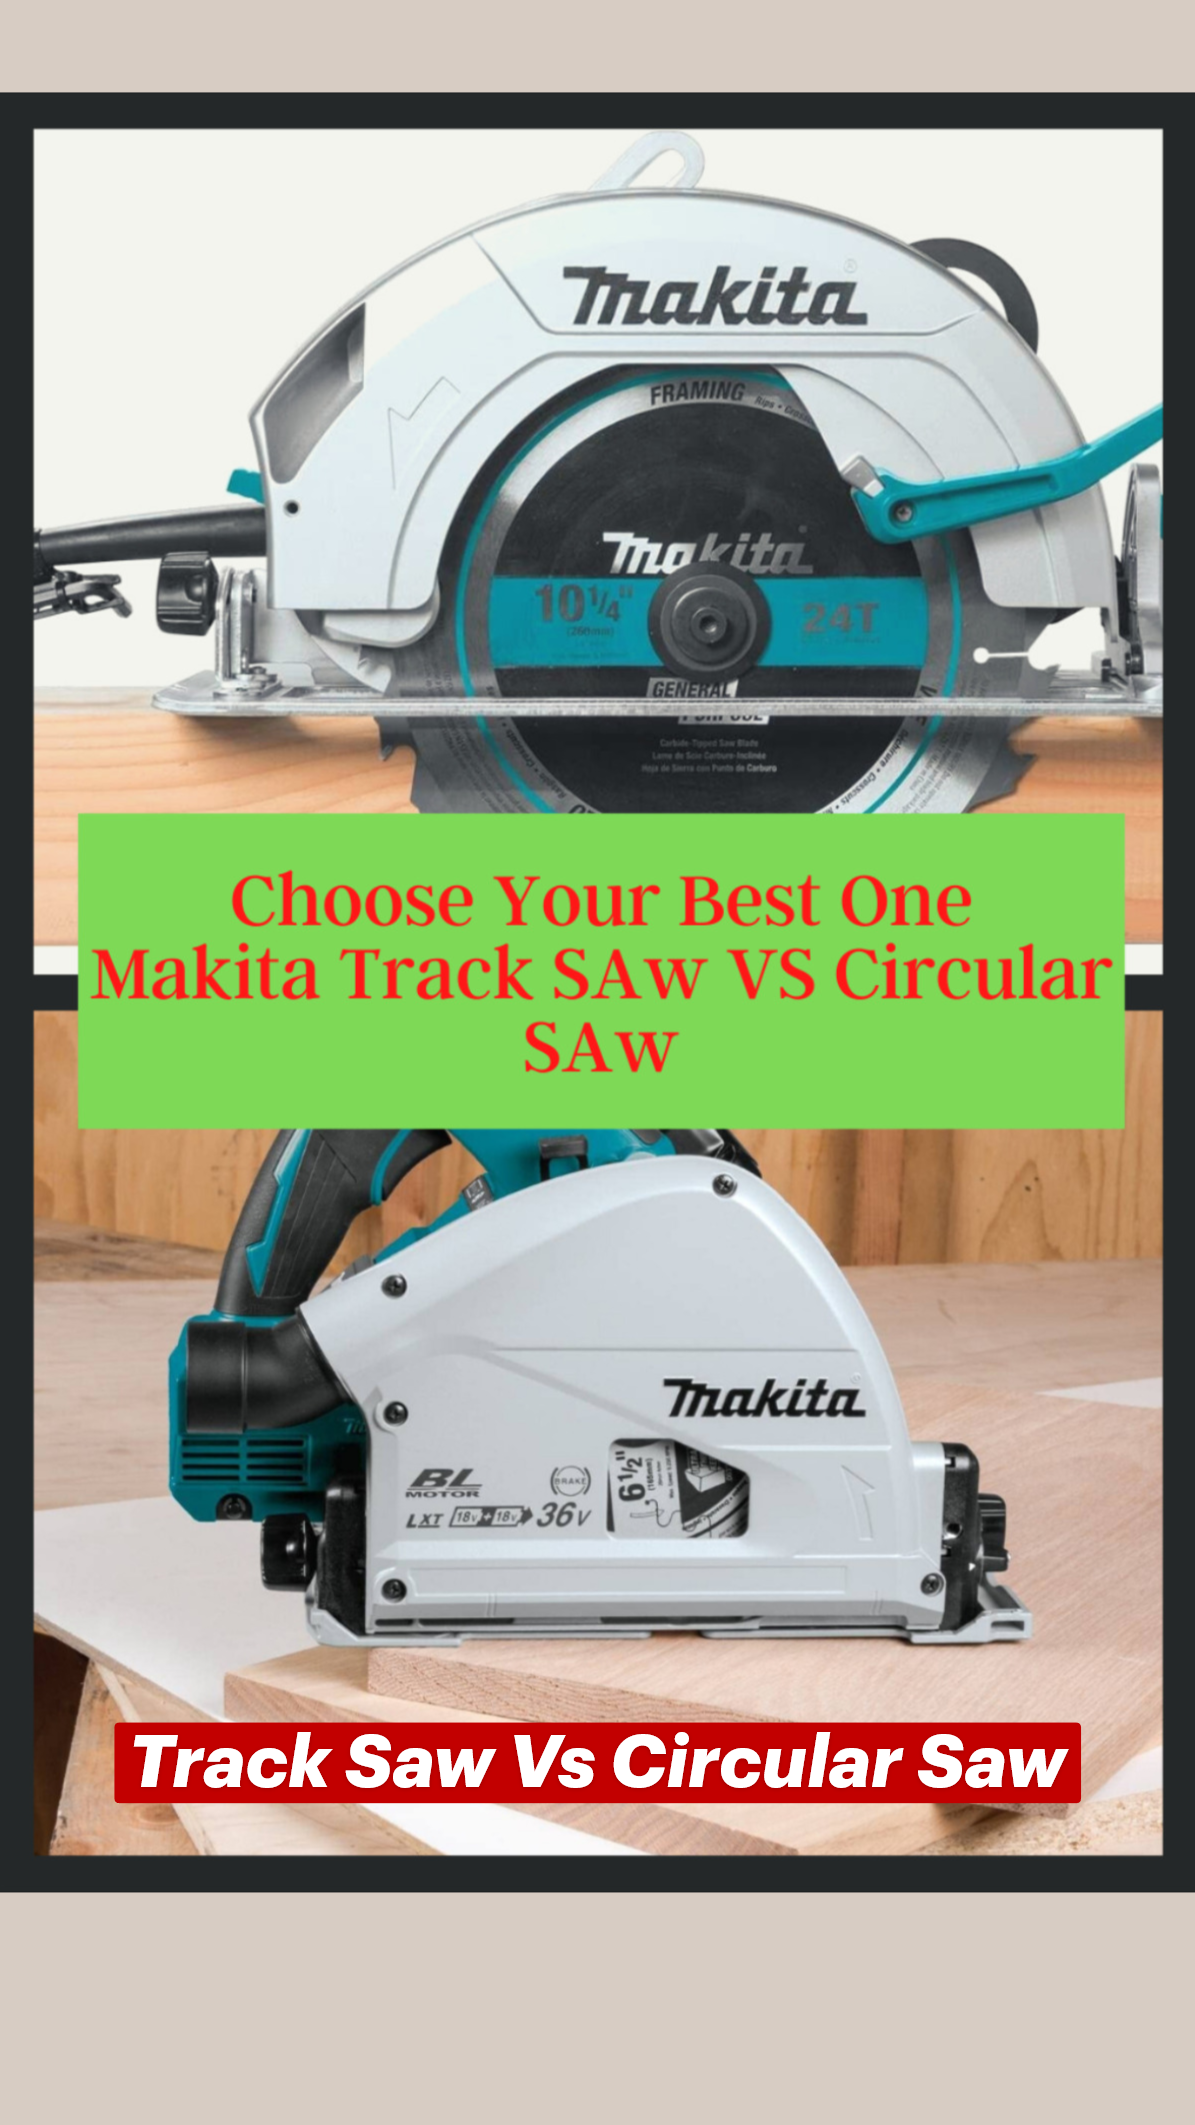 Track Saw Vs Circular Saw An Immersive Guide By Saint Tools Best Tools Reviewer